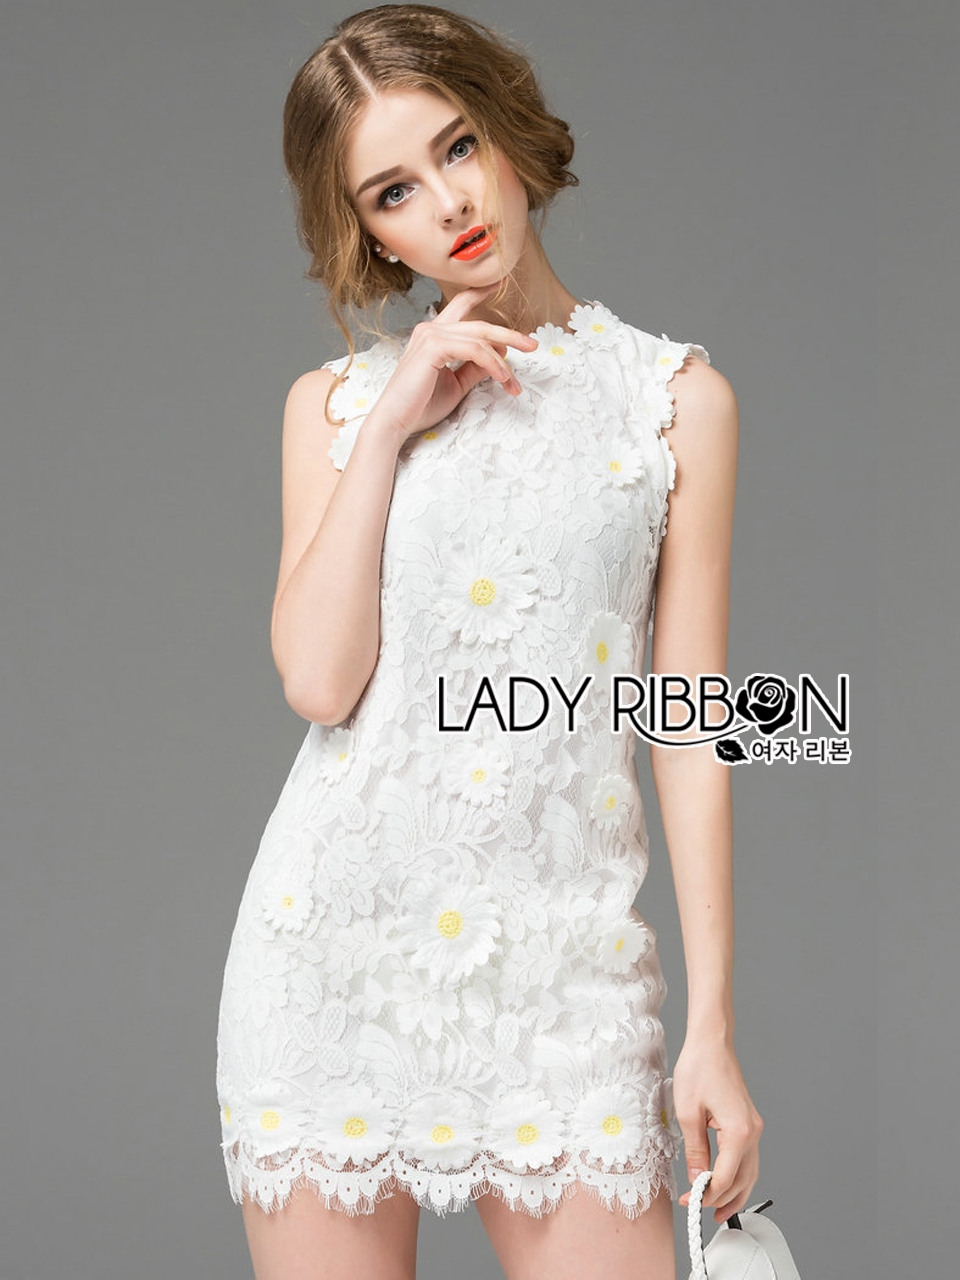 Lady Ribbon's Made Lady Christine Little Daisy Embroidered White Lace Mini Dress